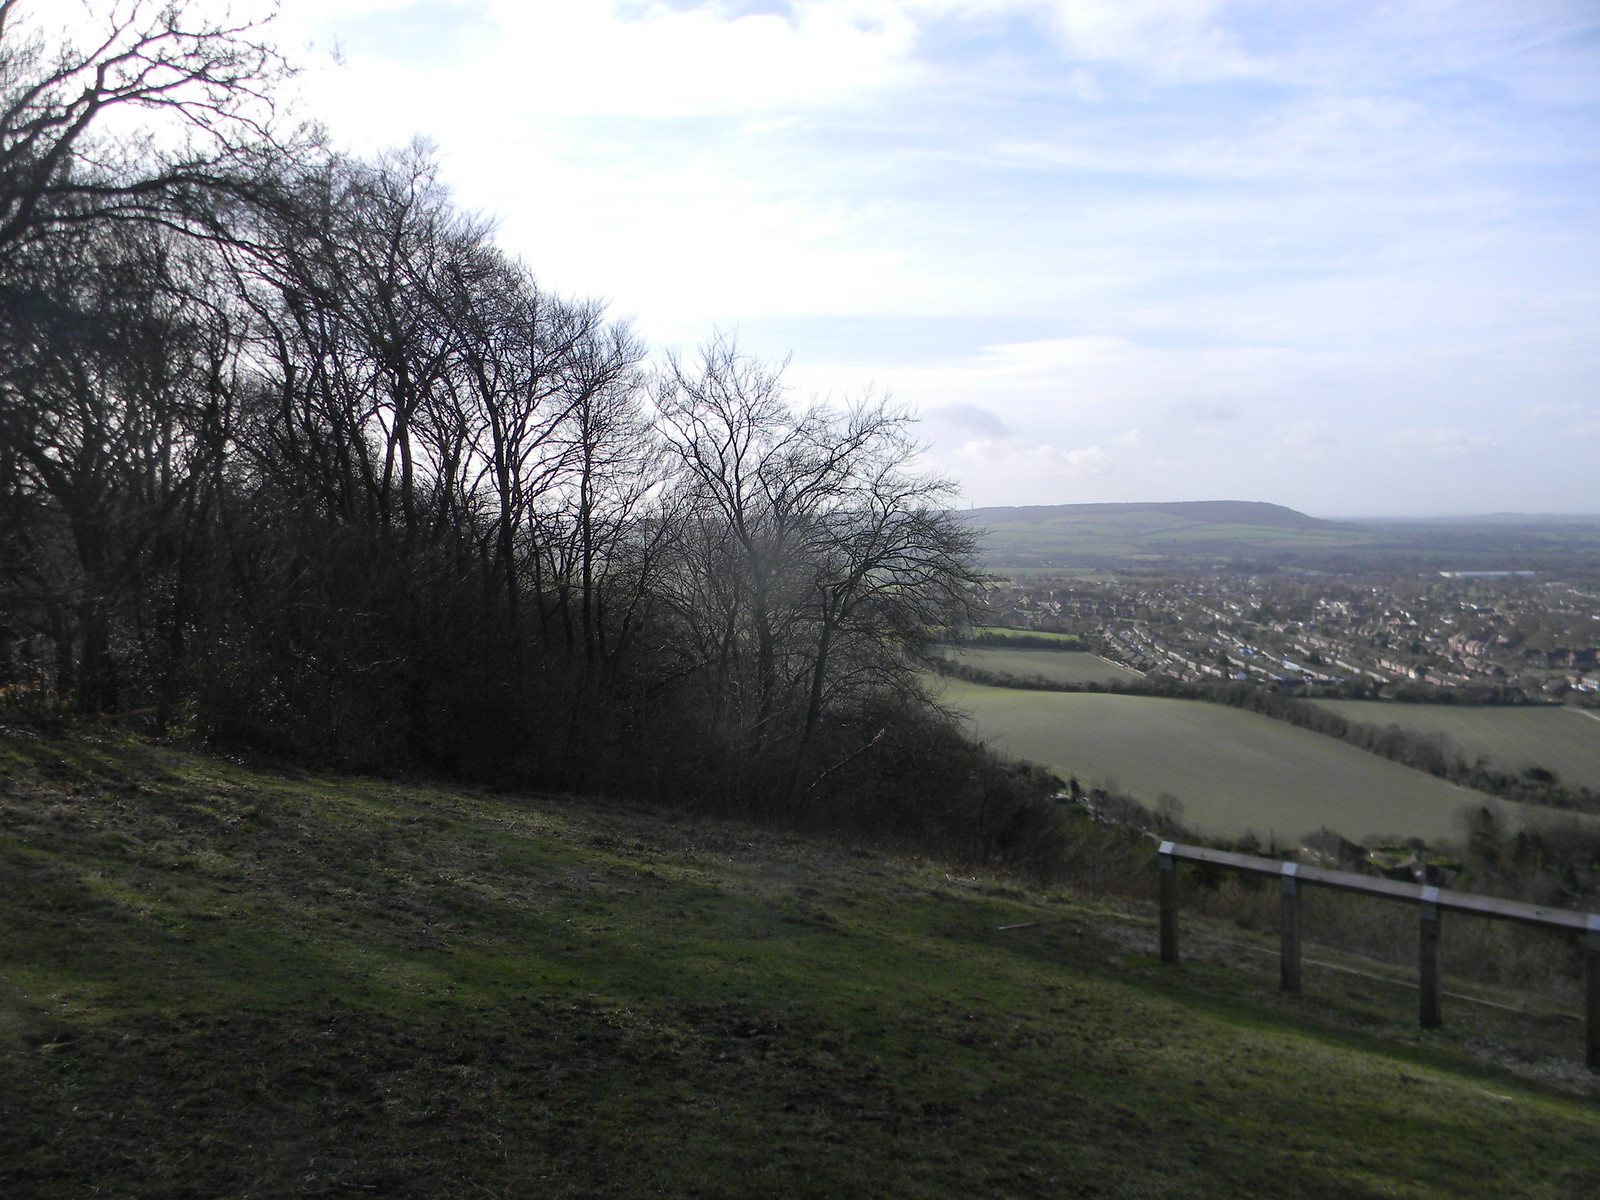 View from Whyteleaf Hill Princes Risborough to Wendover